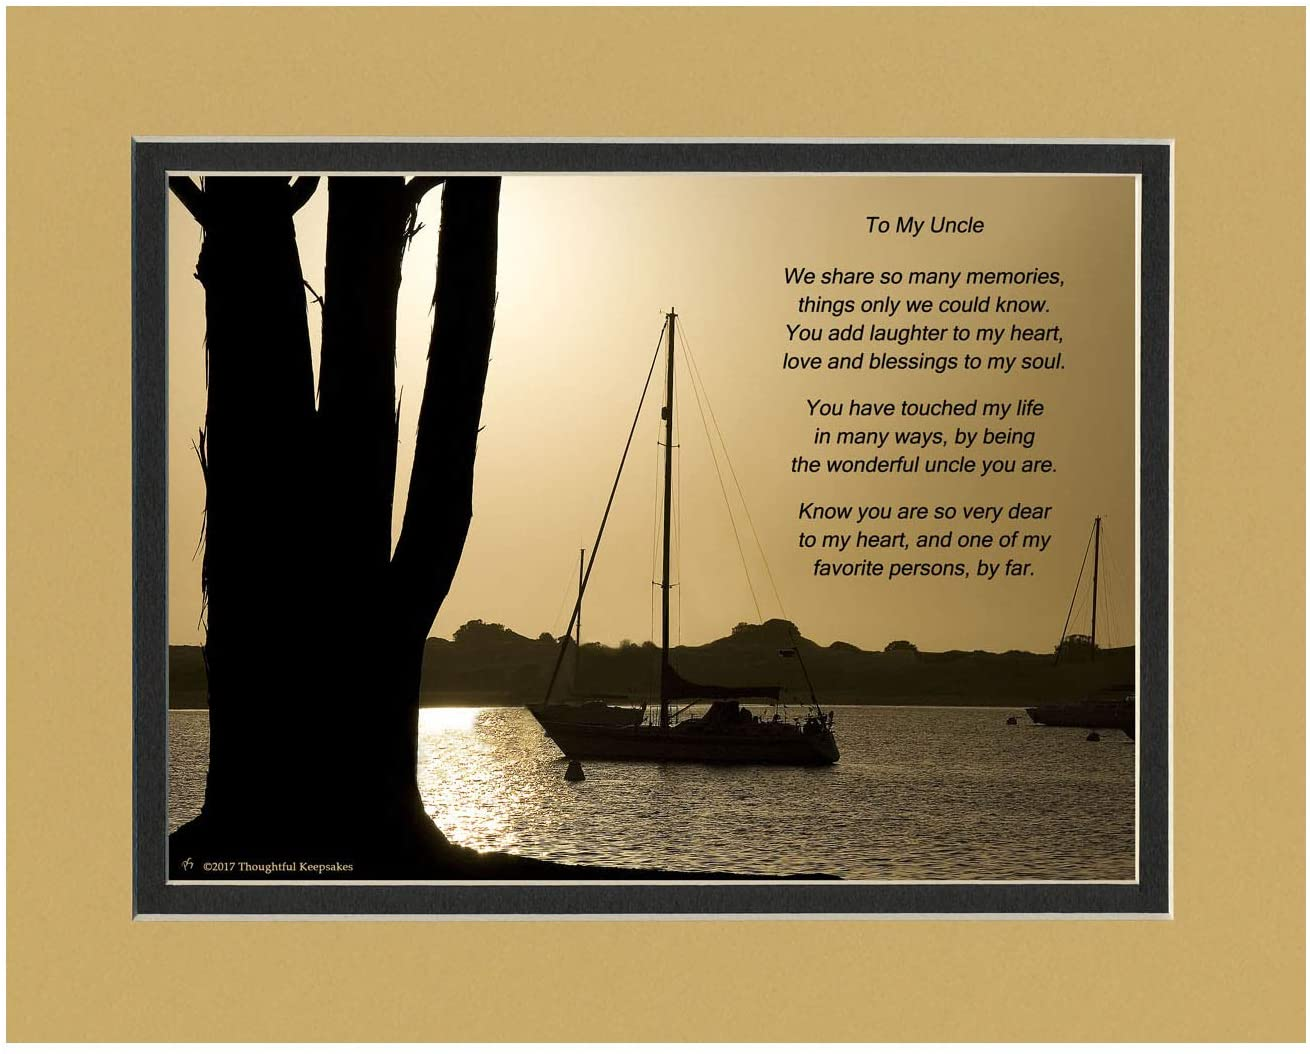 Uncle Gift with Wonderful Uncle Poem. Boats at Dusk Photo, 8x10 Matted. Special Birthday or Christmas Gift for Uncle.